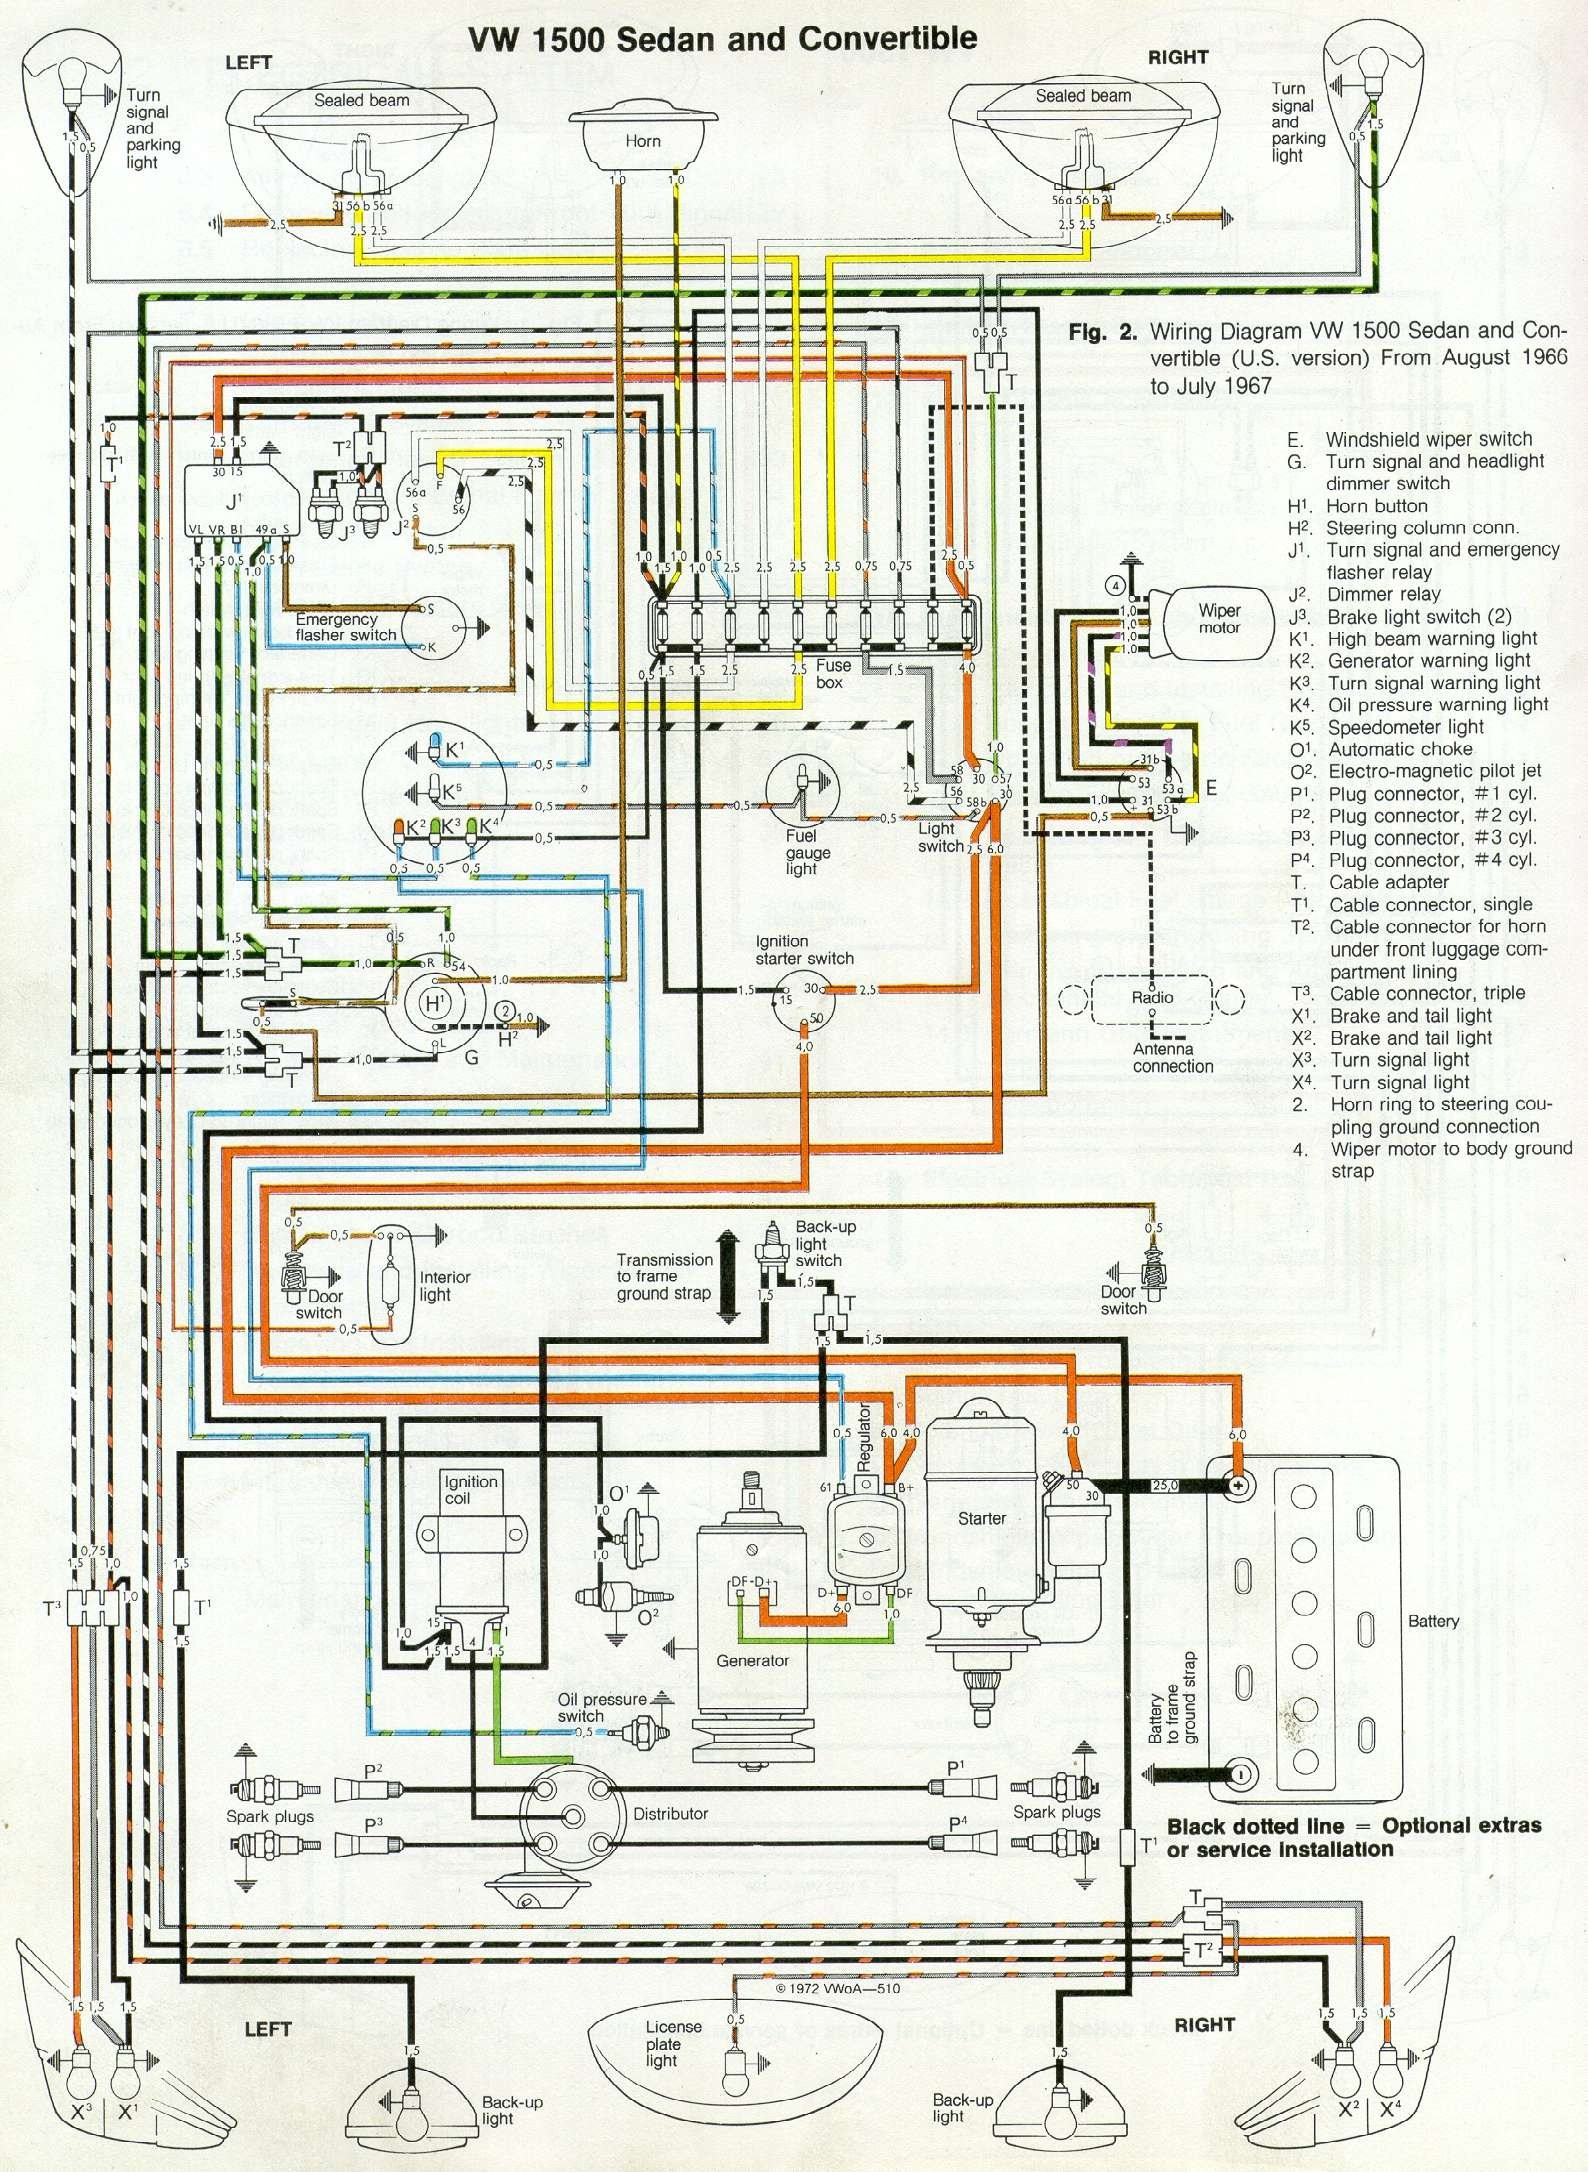 VW Beetle Wiring Digram vw beetle diagram vw beetle timing belt marks \u2022 wiring diagrams 2002 vw beetle wiring diagram at fashall.co